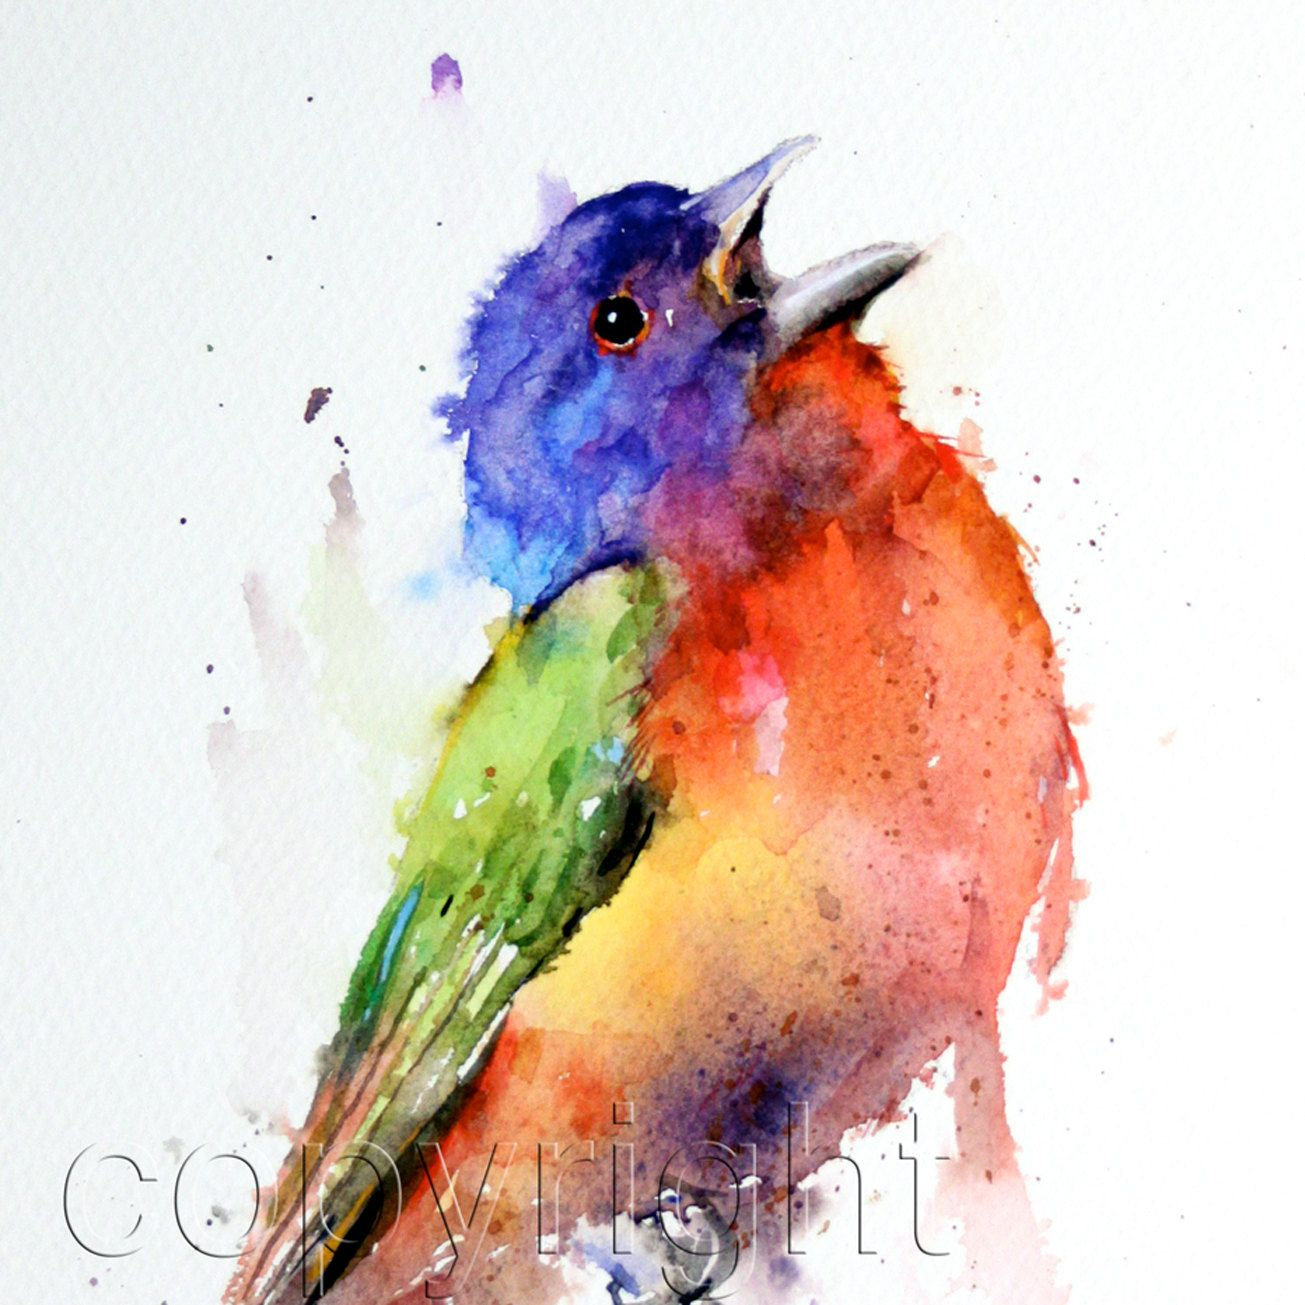 Painted Bunting Watercolor Bird Print Bird Painting Bird Art By Dean Crouser Watercolor Bird Birds Painting Bird Art